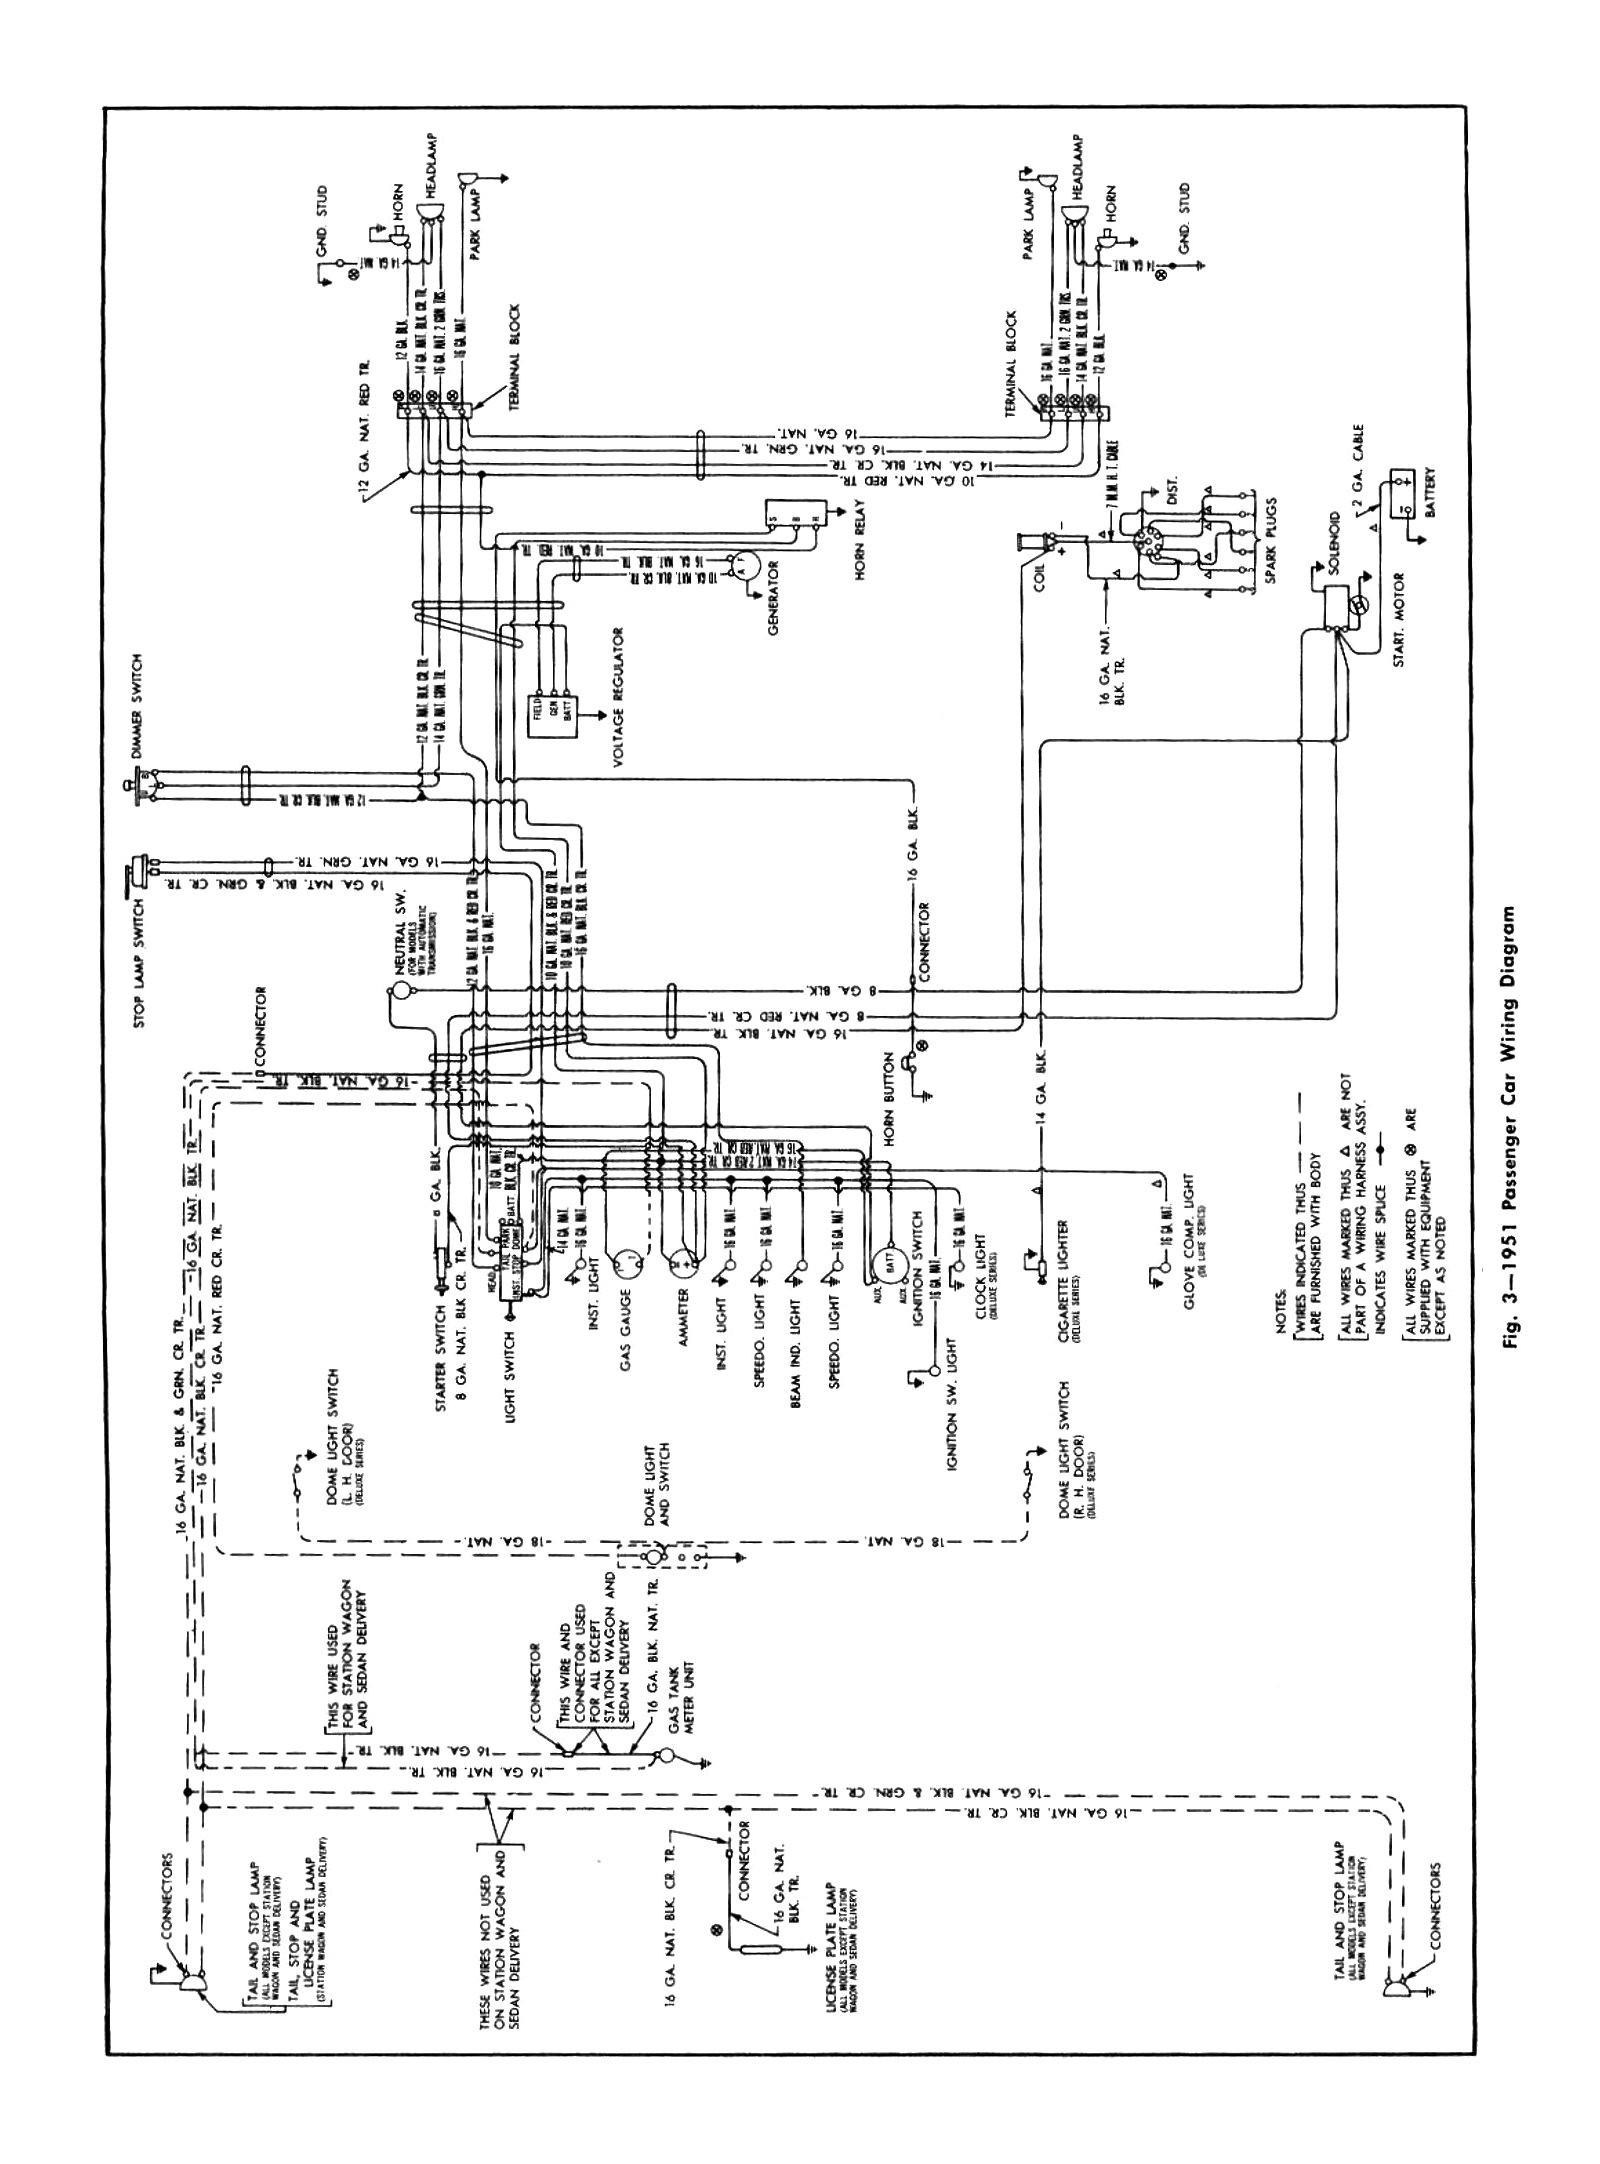 1988 Electric Club Car Schematic Chevy Wiring Diagrams Of 1988 Electric Club Car Schematic